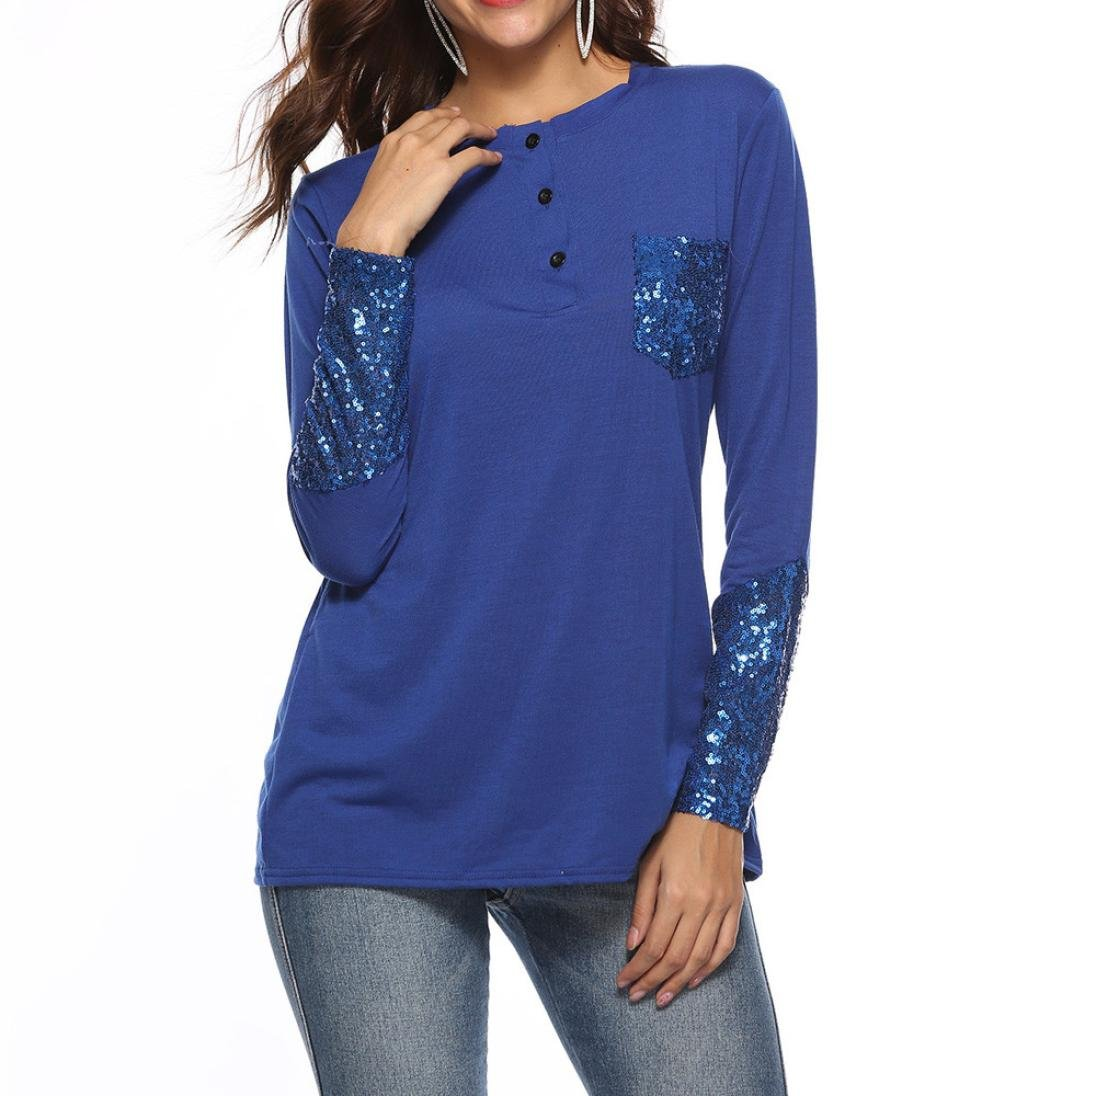 Orangeskycn Long Sleeve Shirts For Women Button Pocket Squined Tunic Blouse Tops